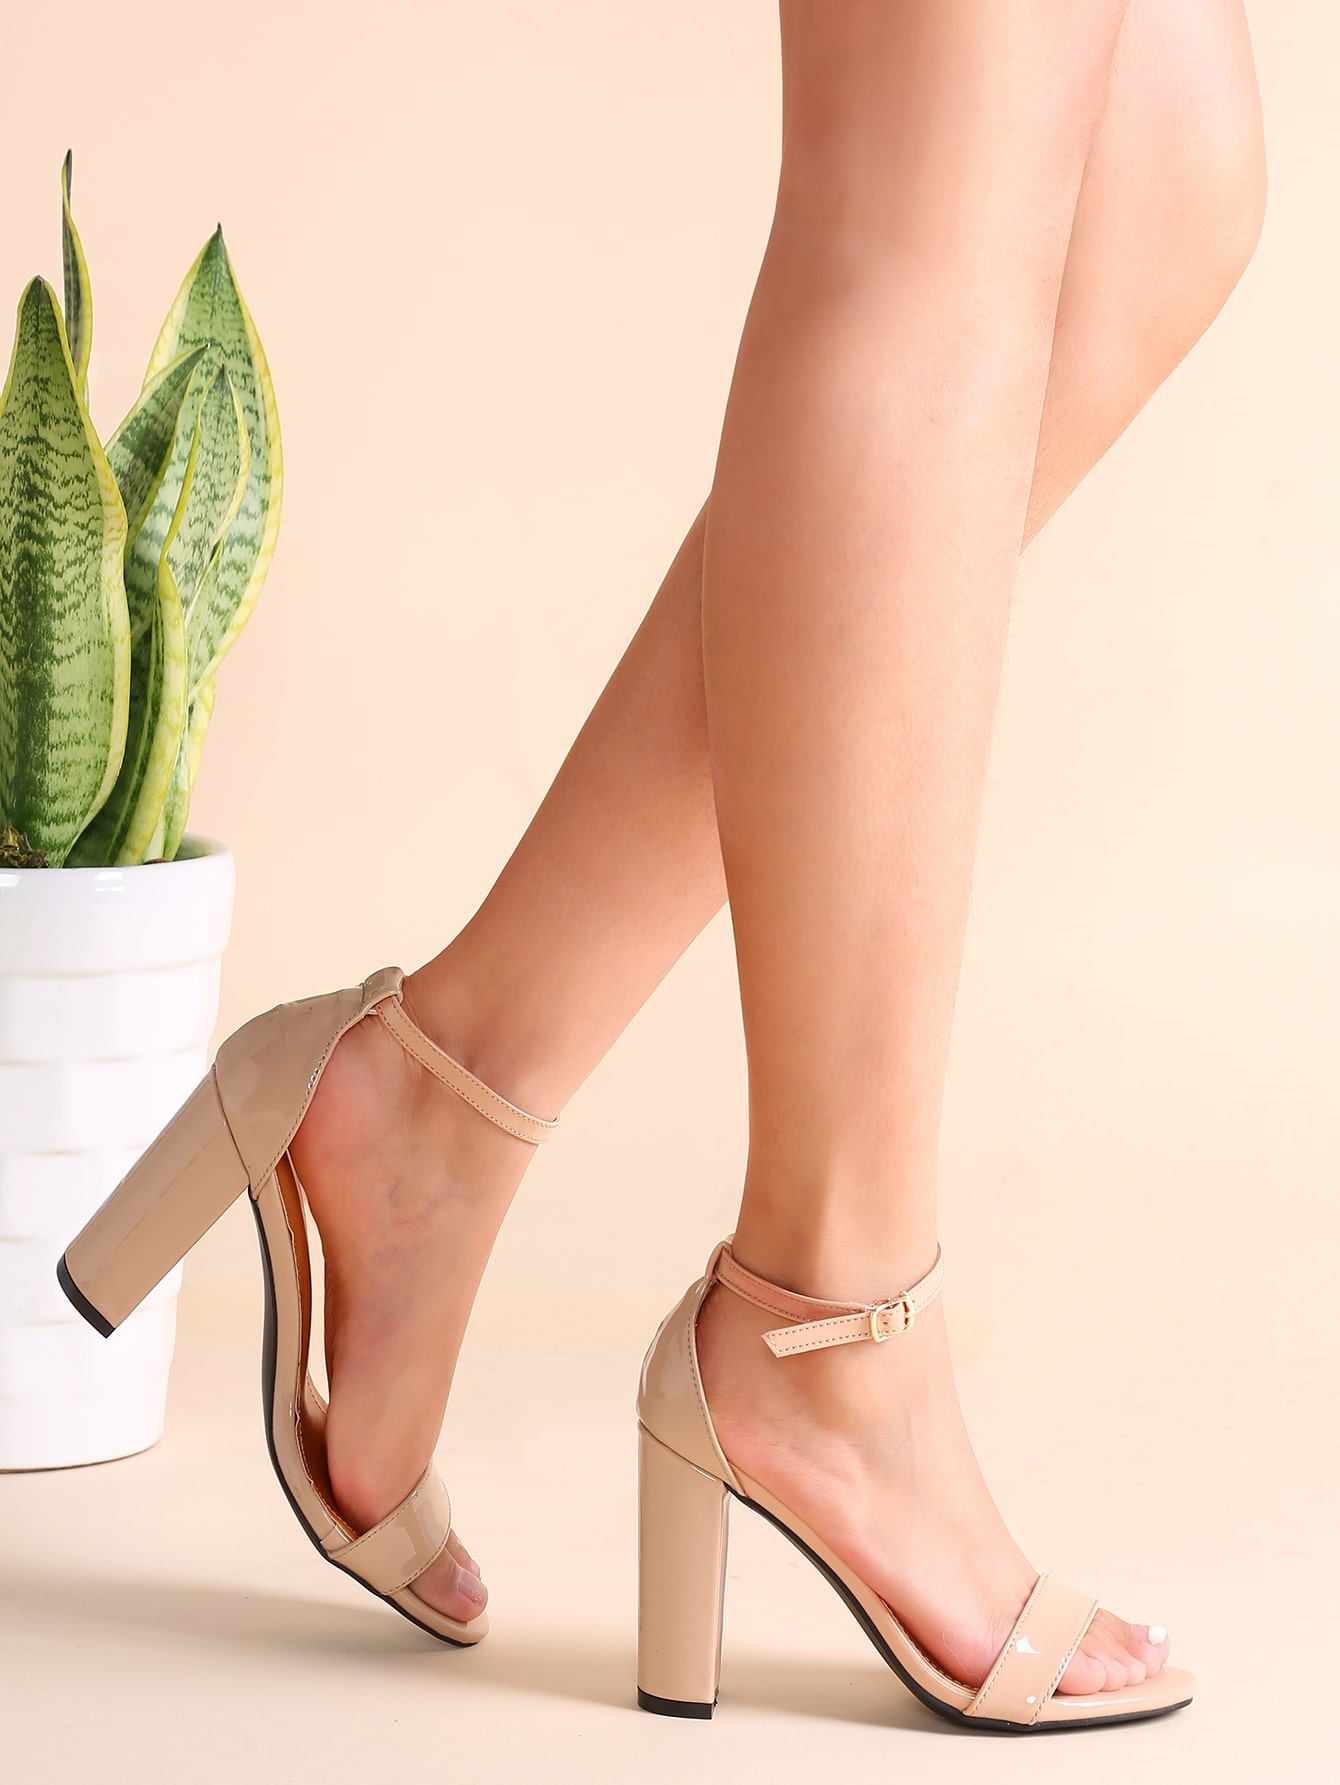 Nude Patent Leather Open Toe Ankle Strap Heeled Sandals shoes161202801